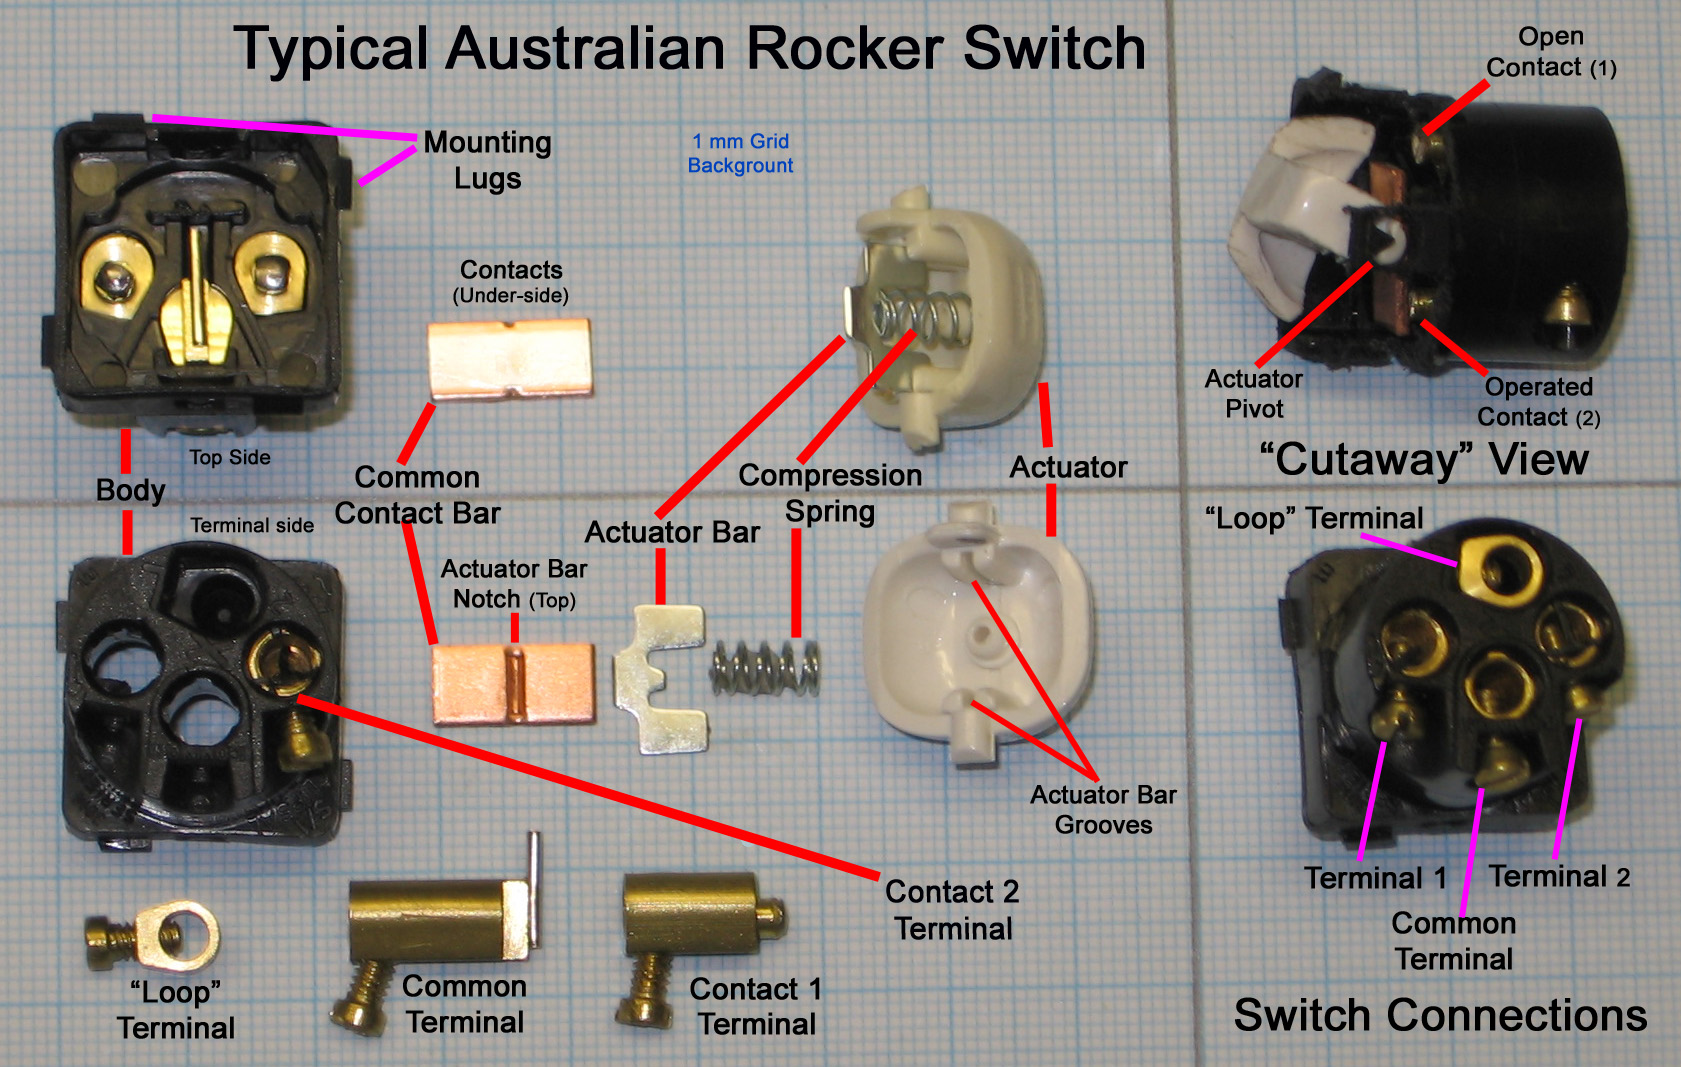 Typical Light Switch Wiring Diagram: Typical Australian Rocker Switch.jpg - Wikimedia Commons,Design